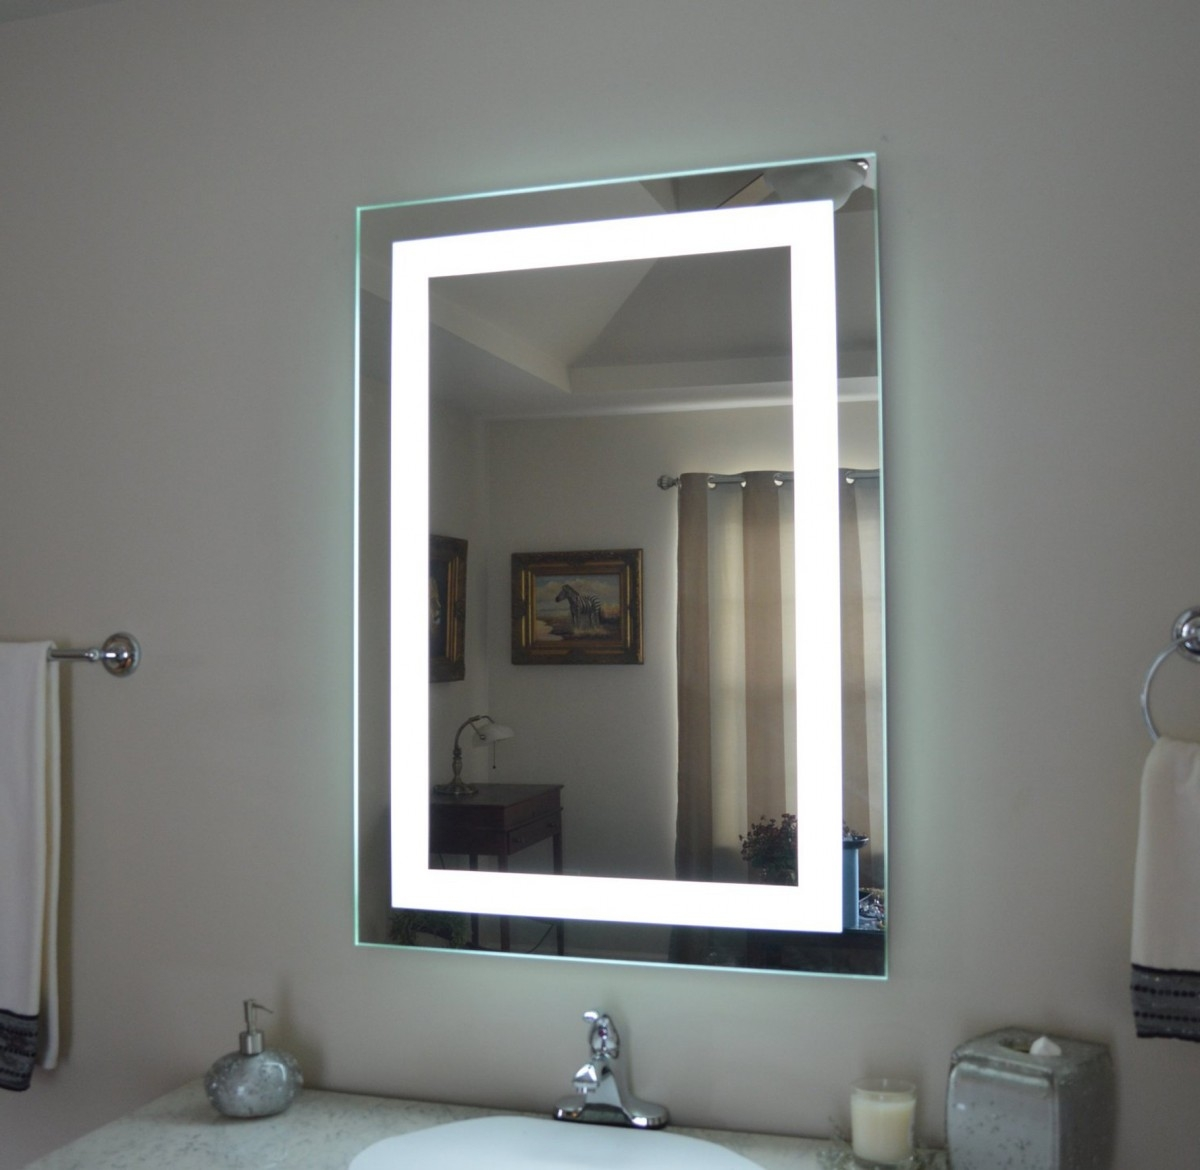 Permalink to Bathroom Medicine Cabinets With Mirrors And Lights